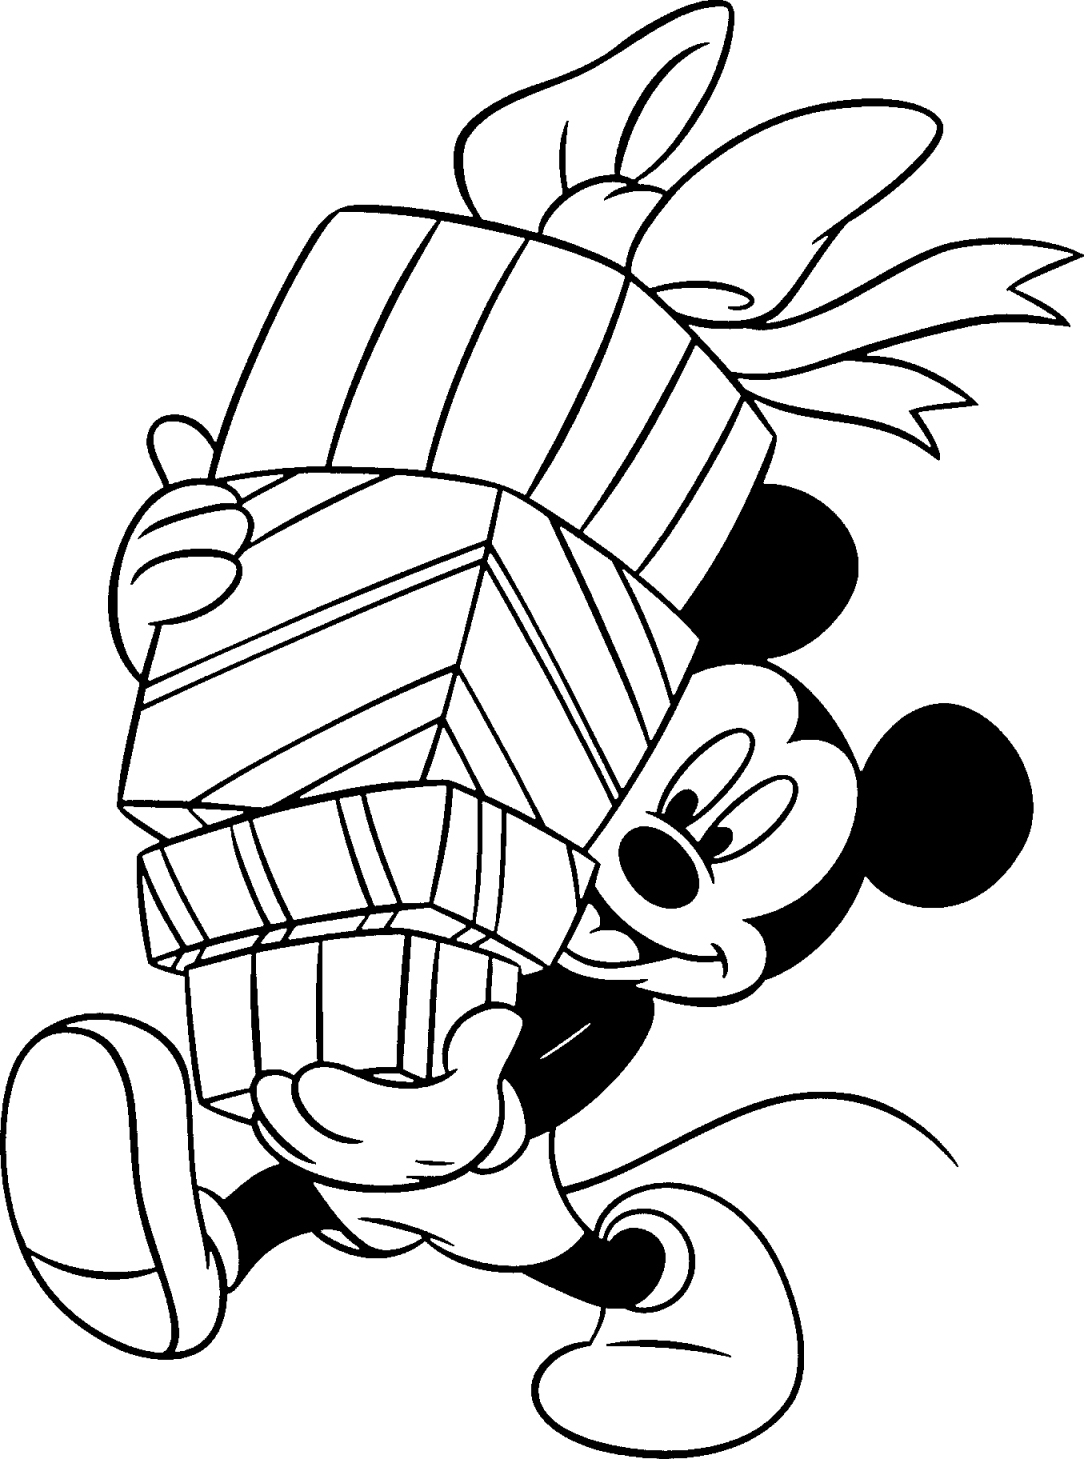 coloring pictures disney coloring pages christmas disney gtgt disney coloring pages pictures coloring disney